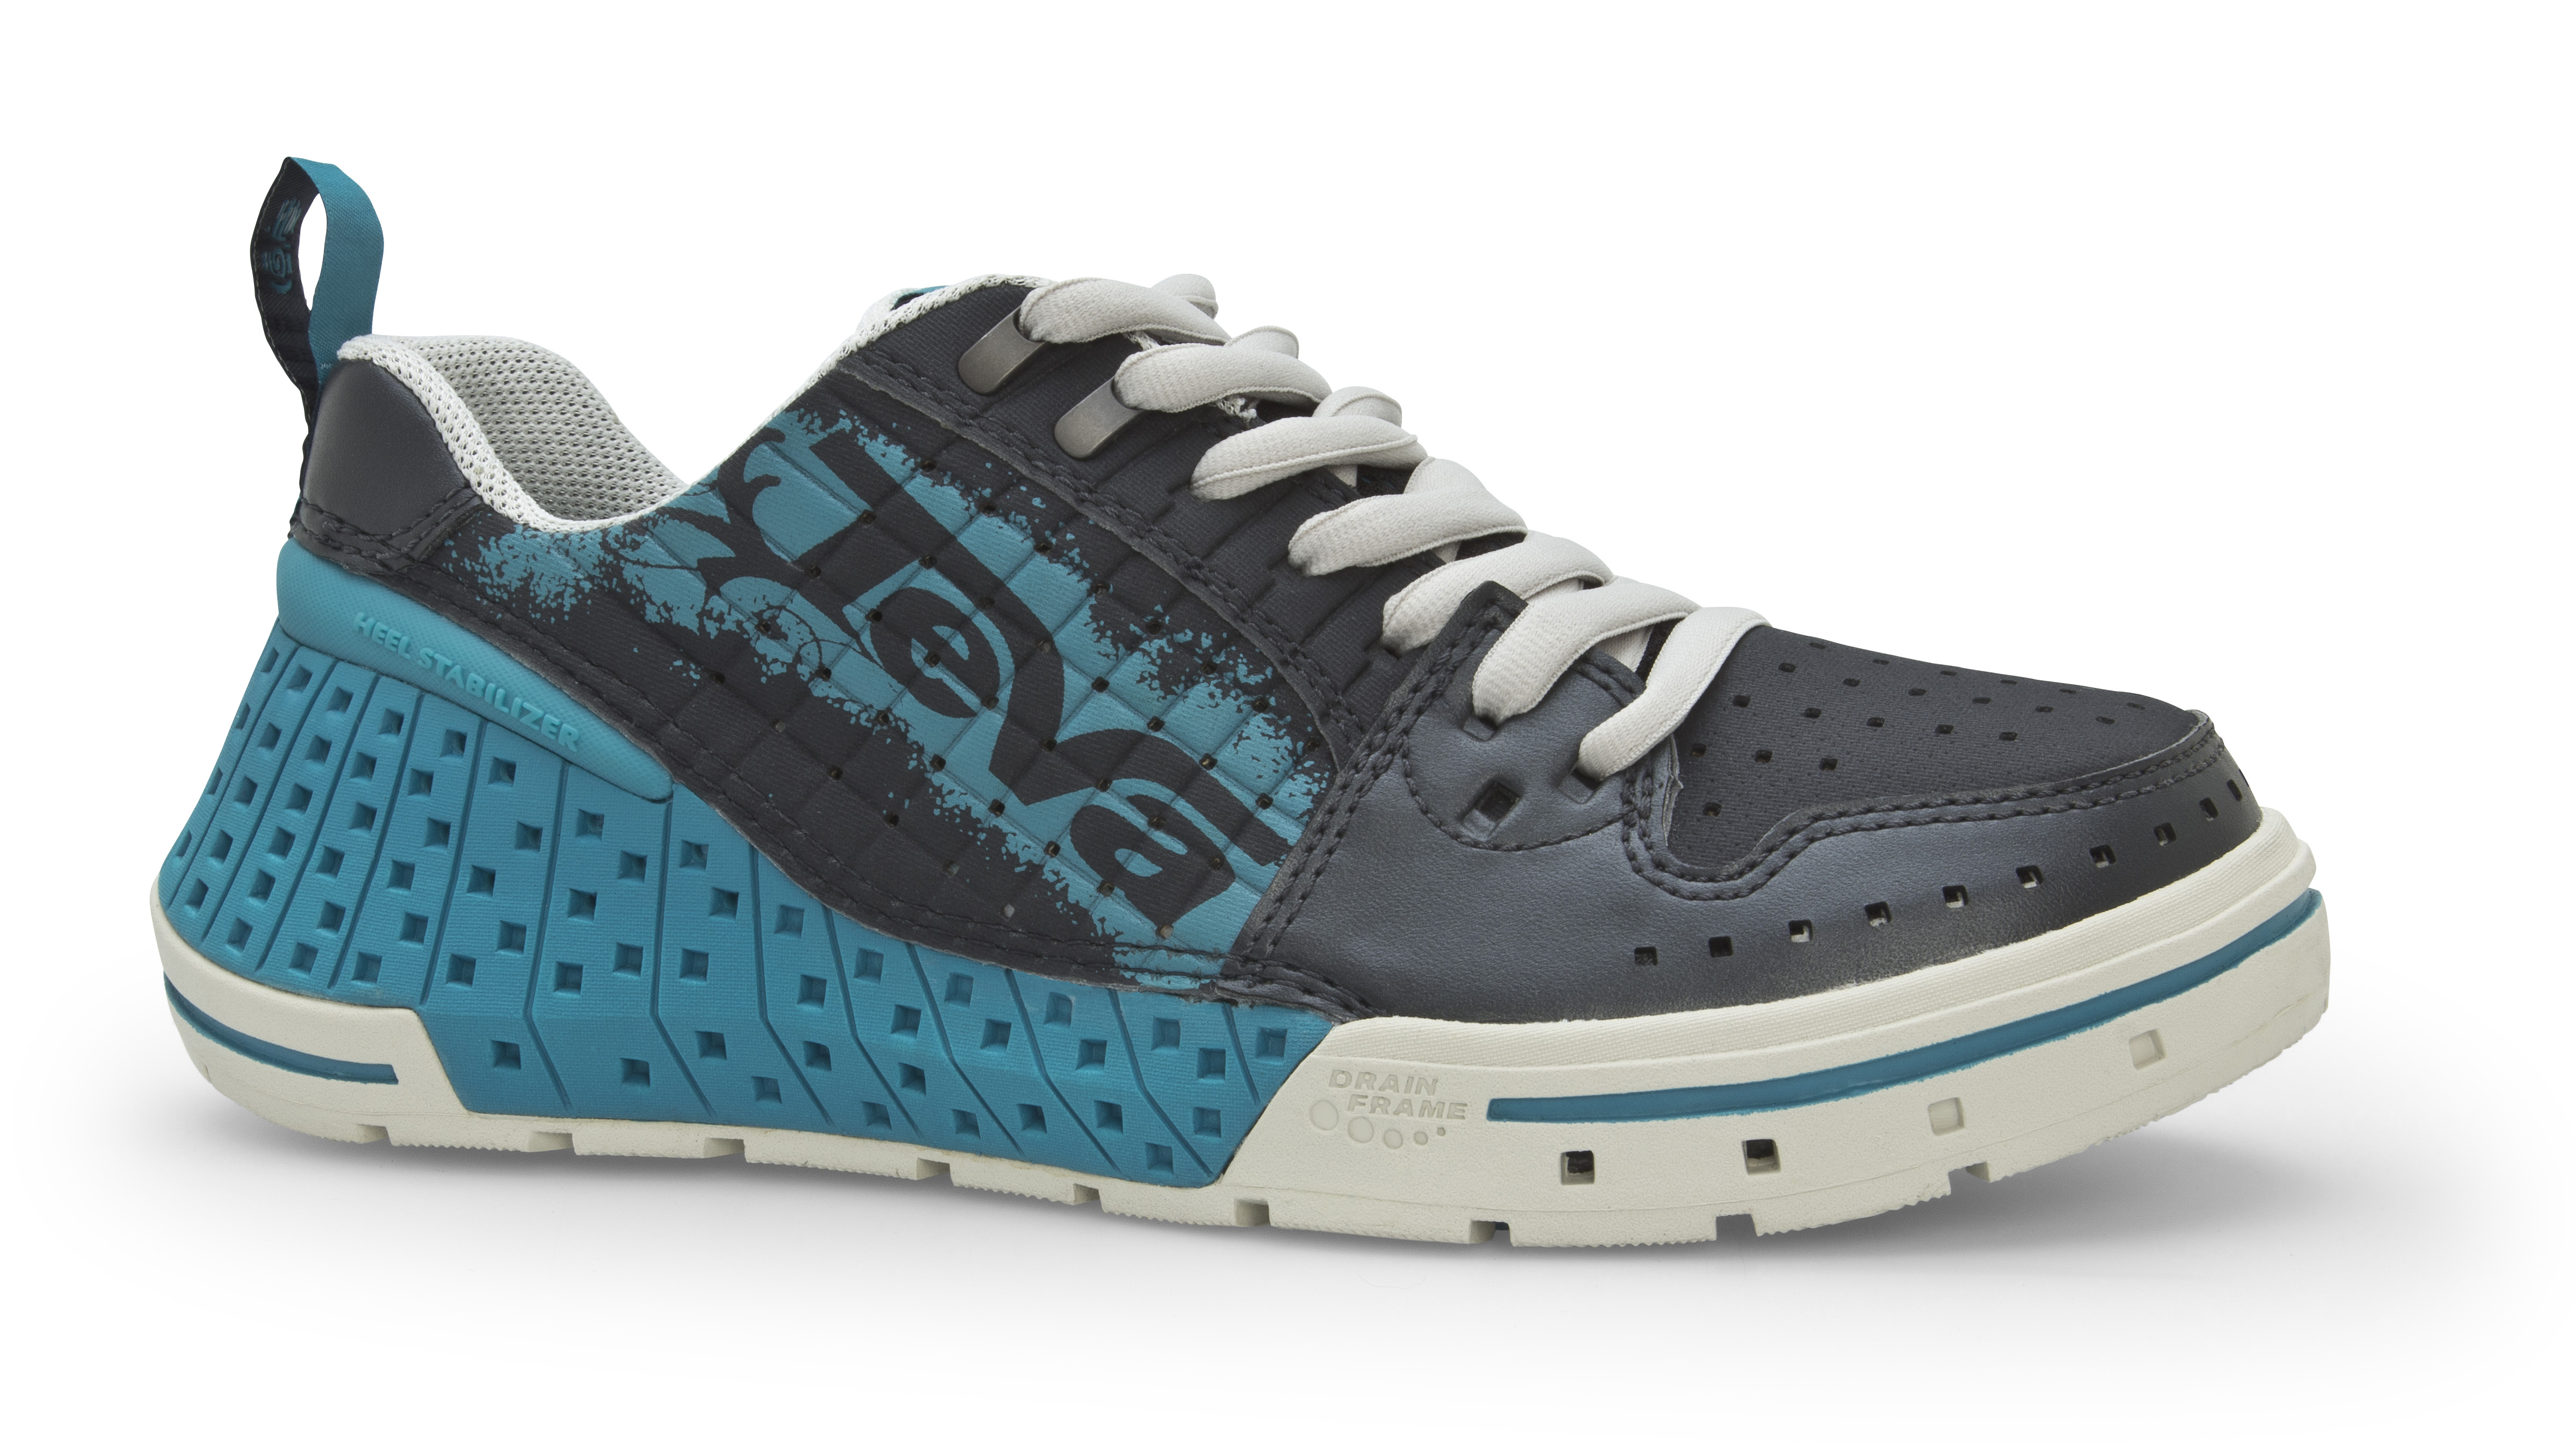 New colors of the Gnarkosi from Teva's Blue Line Collection will debut in Spring 2012.